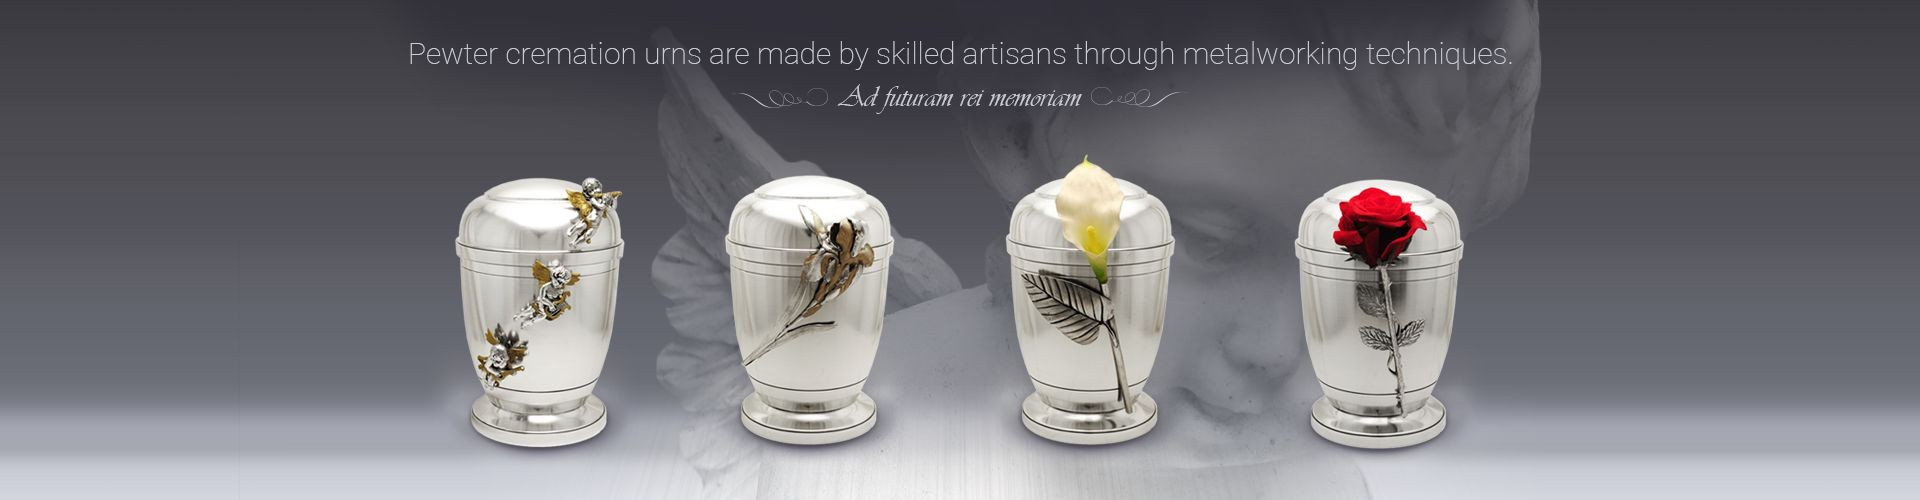 Pewter cremation urns are made by skilled artisans through metalworking techniques